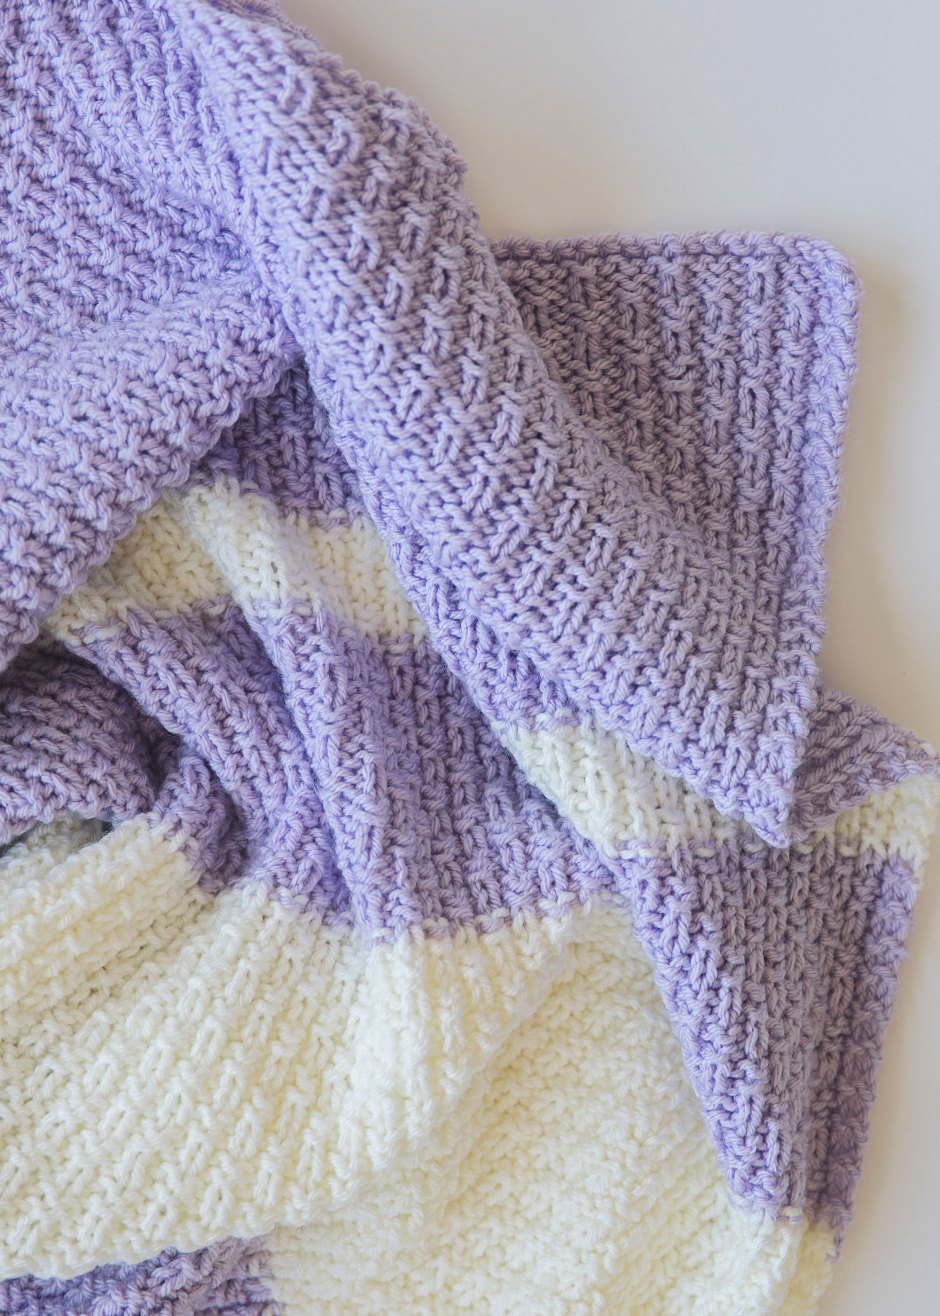 Knitting Pattern For Baby Blanket Easy : Easy Knit Baby Blanket Pattern - Leelee KnitsLeelee Knits